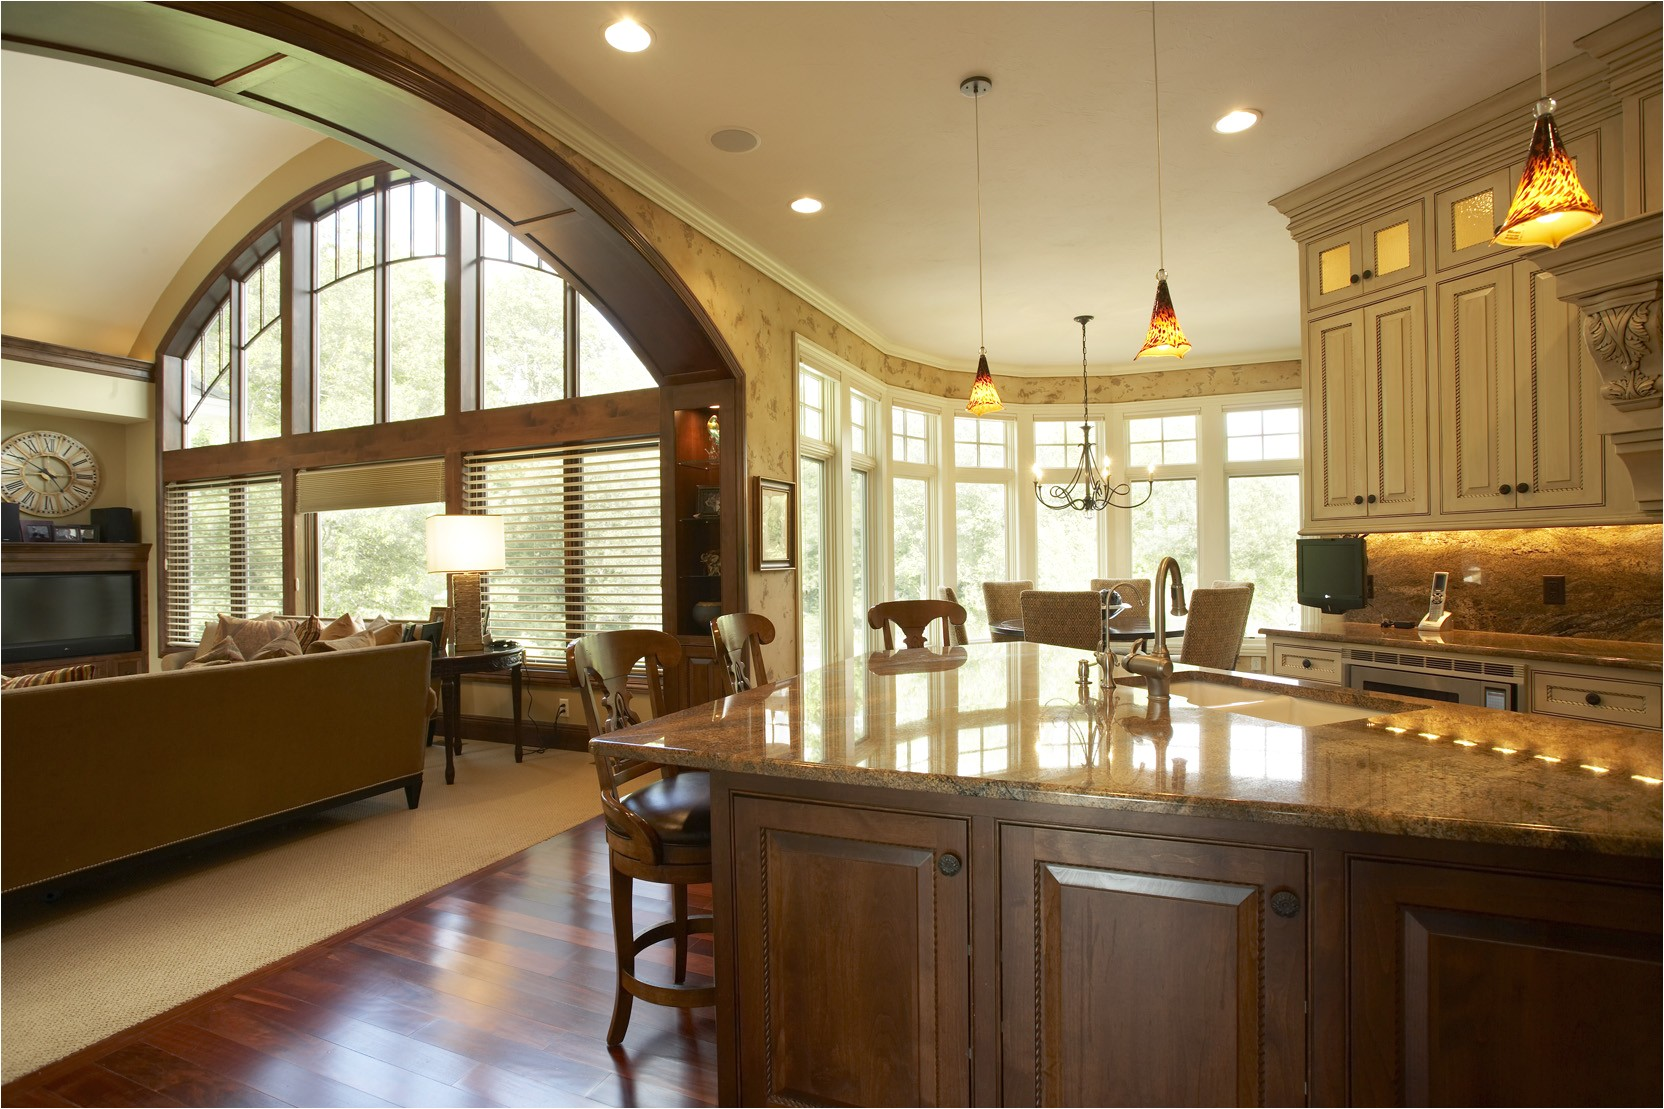 house plans with large kitchen windows